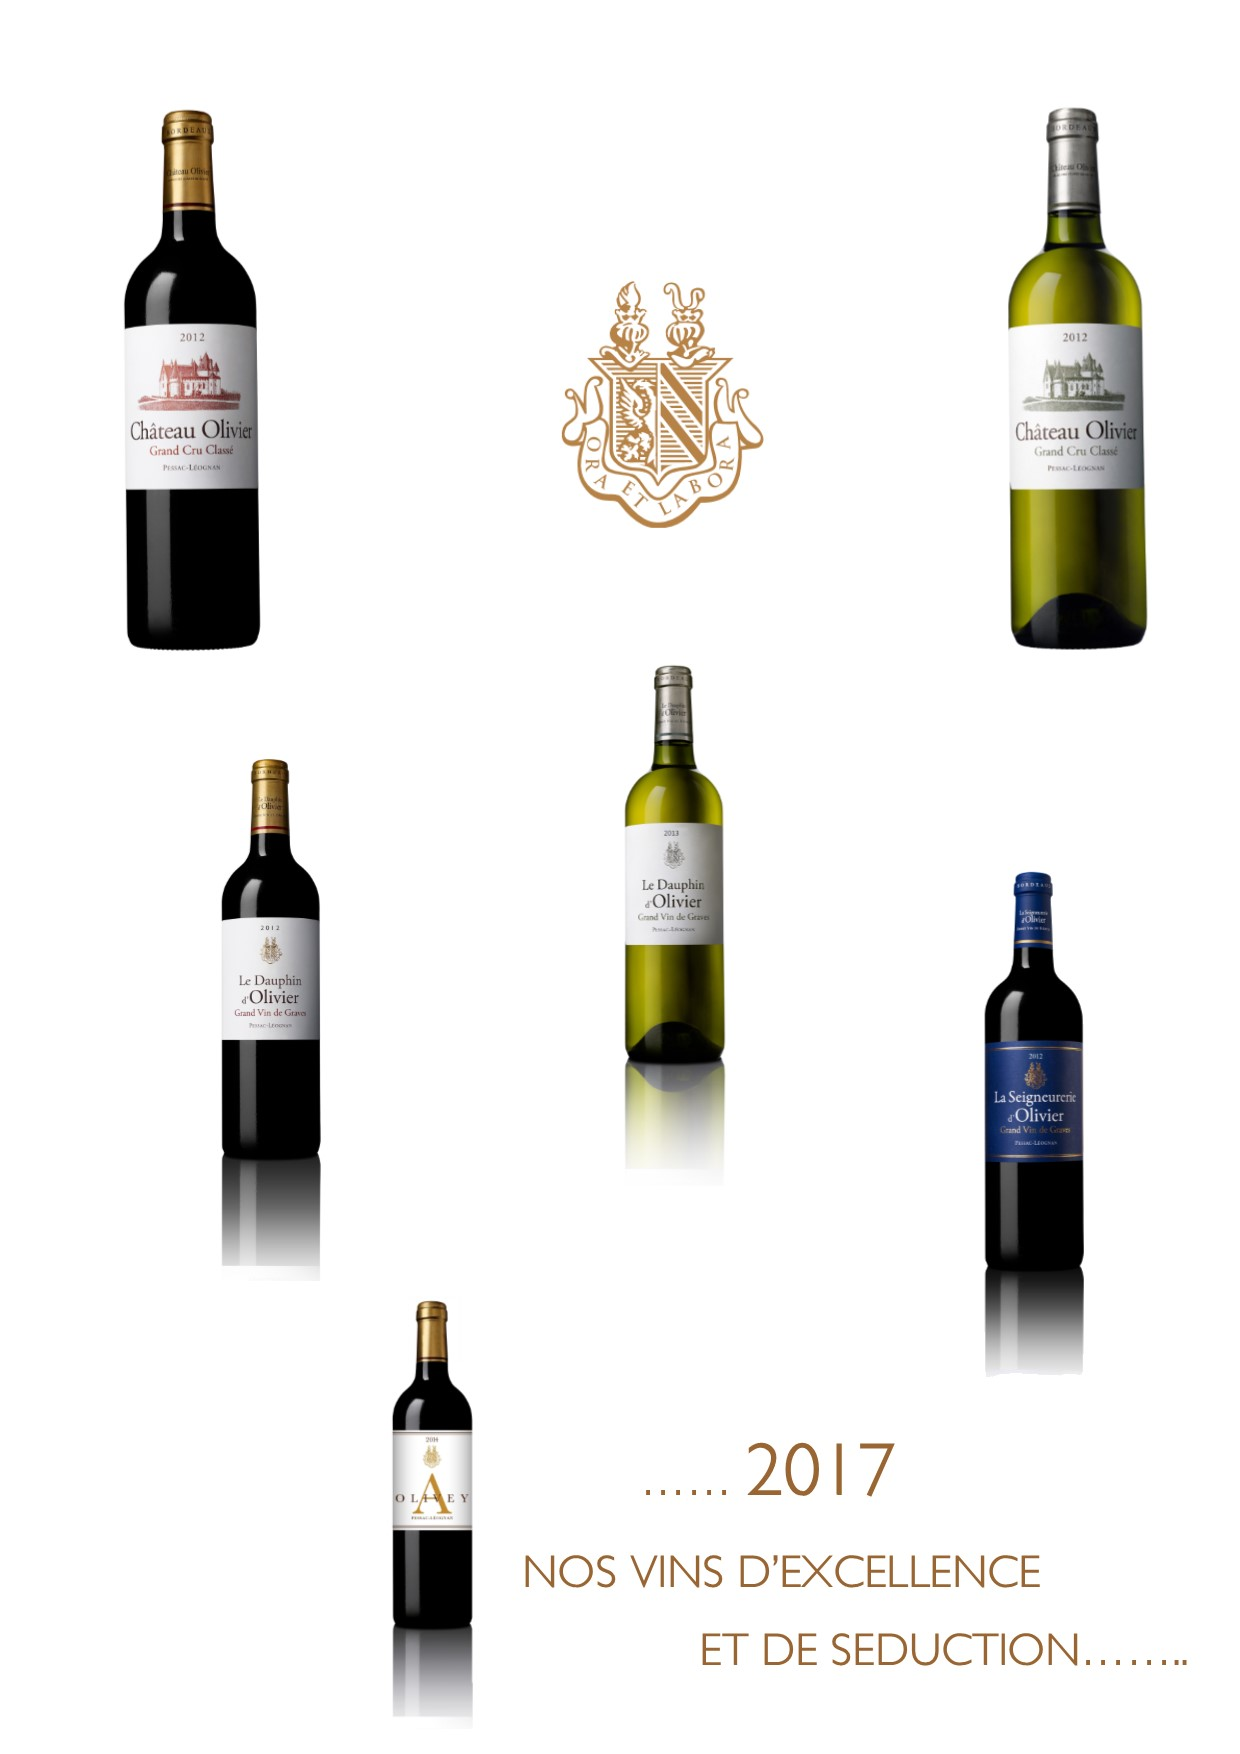 THE NEW YEAR 2017 STARTS AT CHATEAU OLIVIER GRAND CRU CLASSE PESSAC LEOGNAN